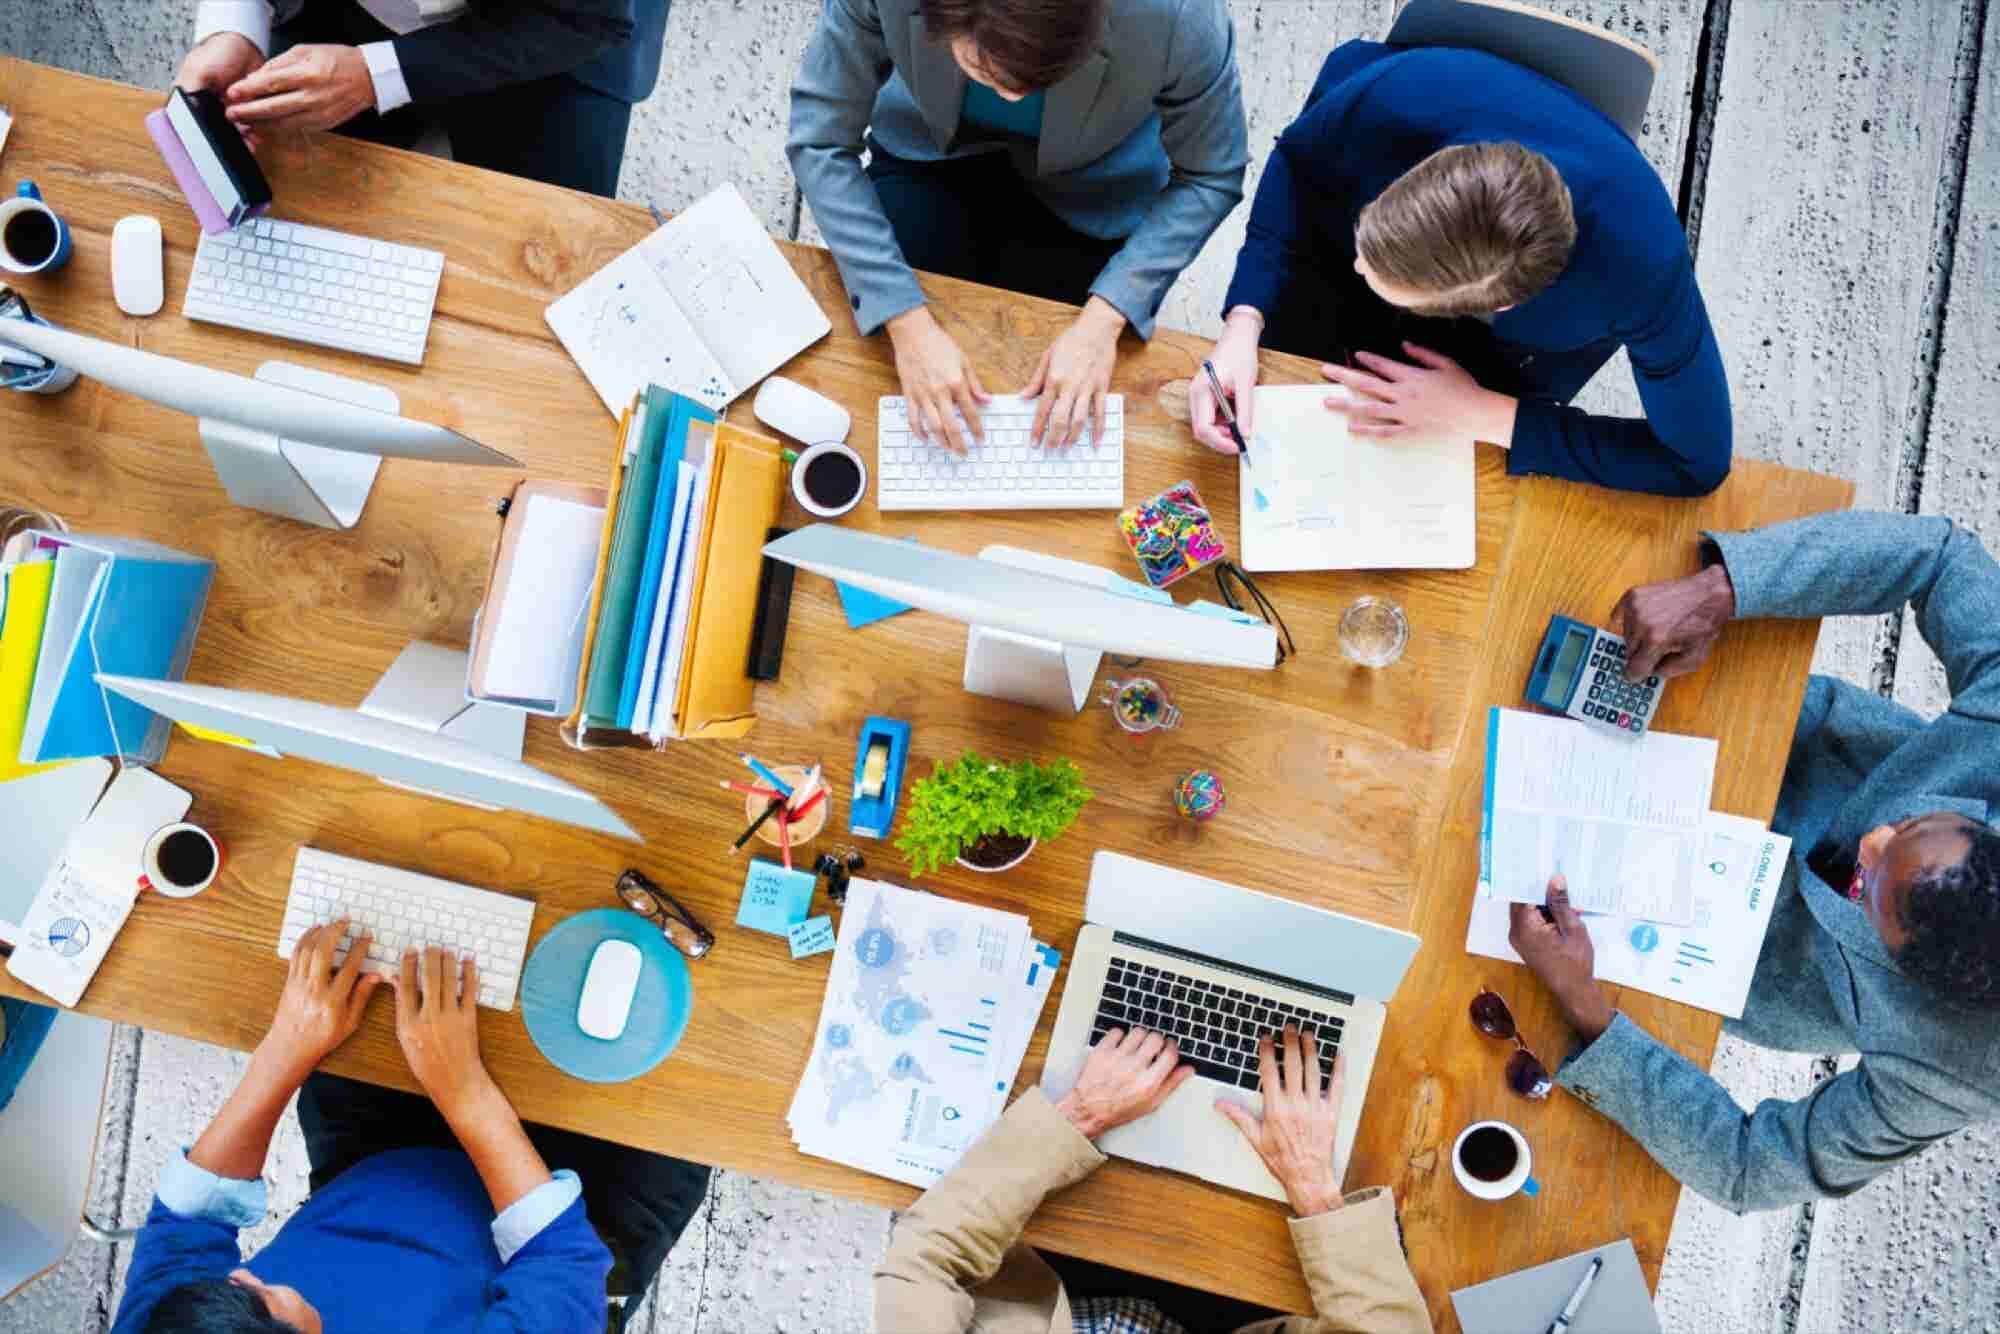 #5 Reasons Why You Aren't Ready to Work at a Startup